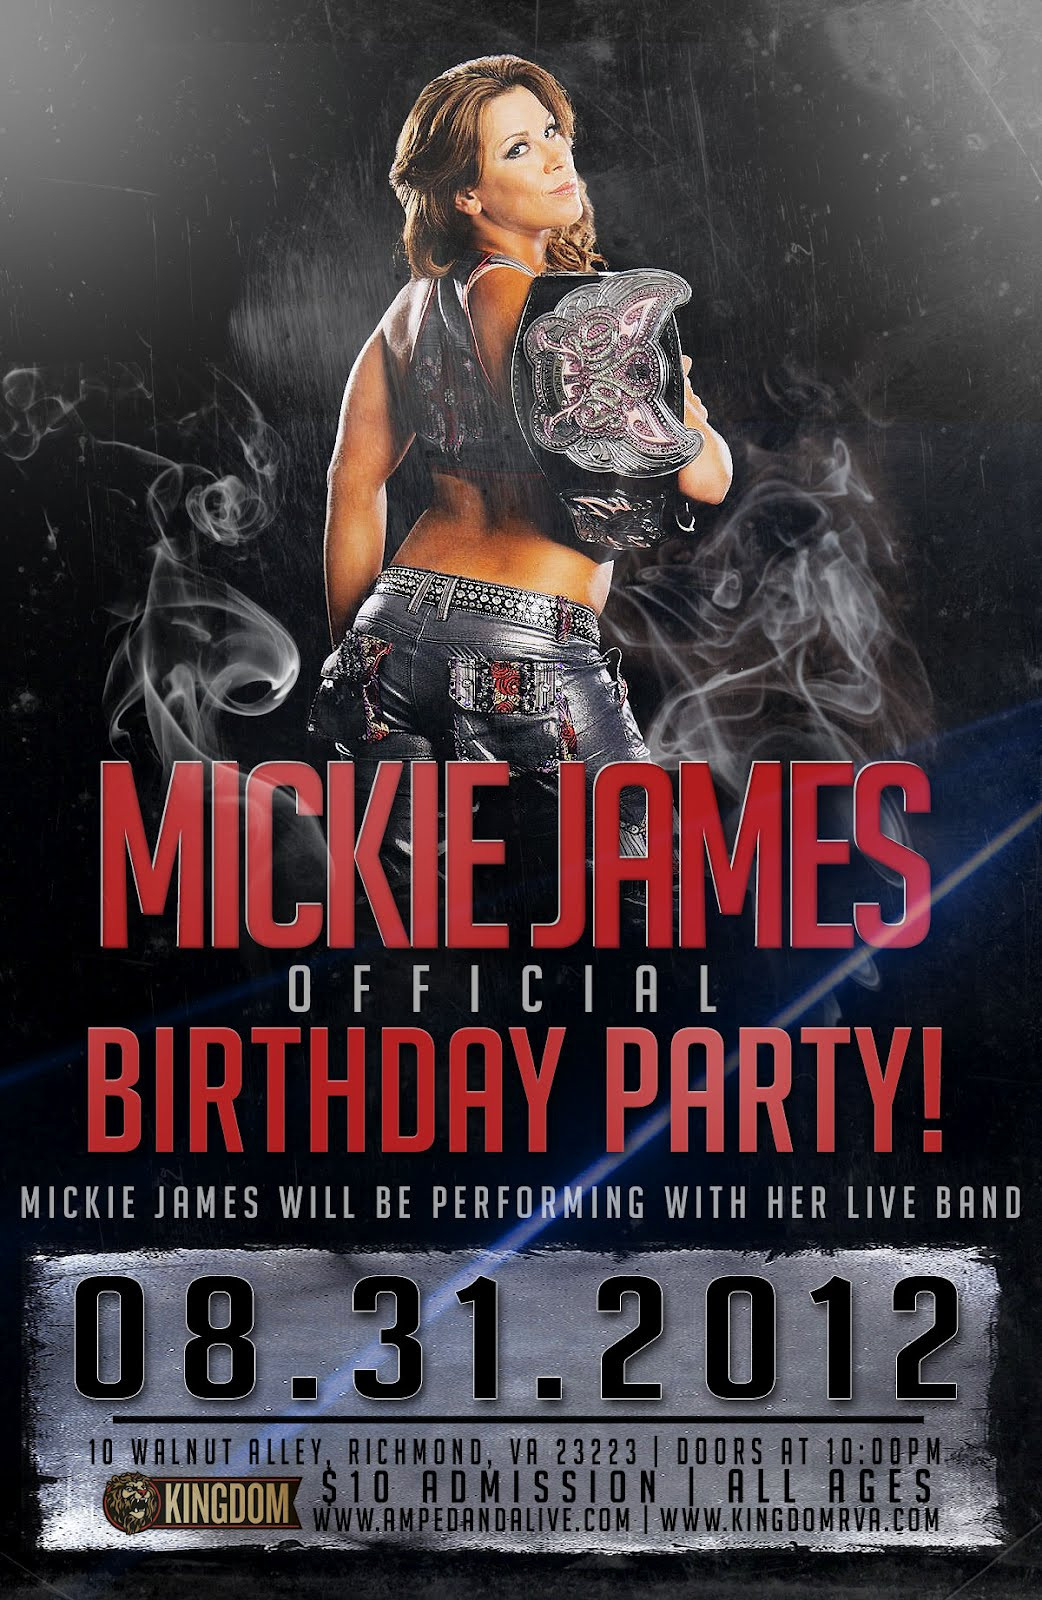 Birthday Party Richmond Va  Wrestling News Center Mickie James Birthday Party In